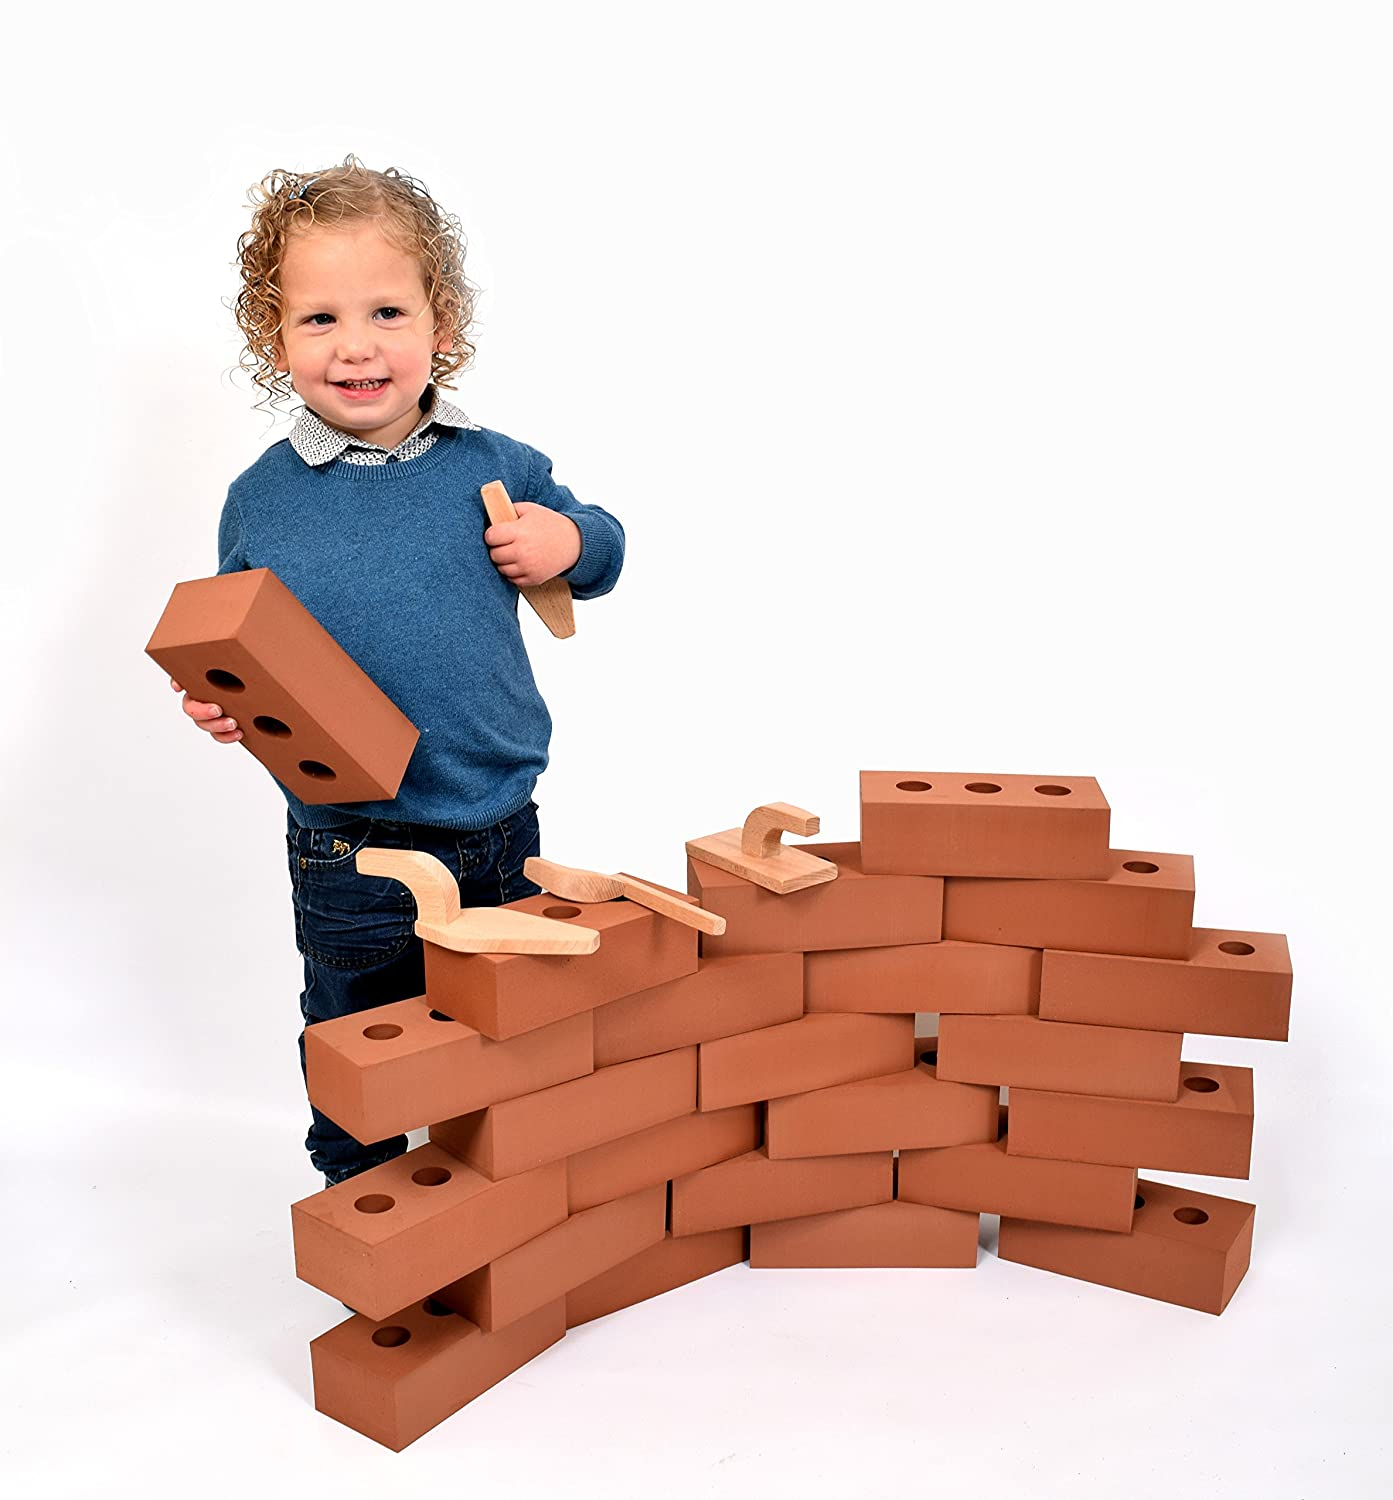 Playlearn USA Brick Building Blocks for Kids, Actual Brick Size, Builders Set for Construction and Stacking (25 Pack) CY25